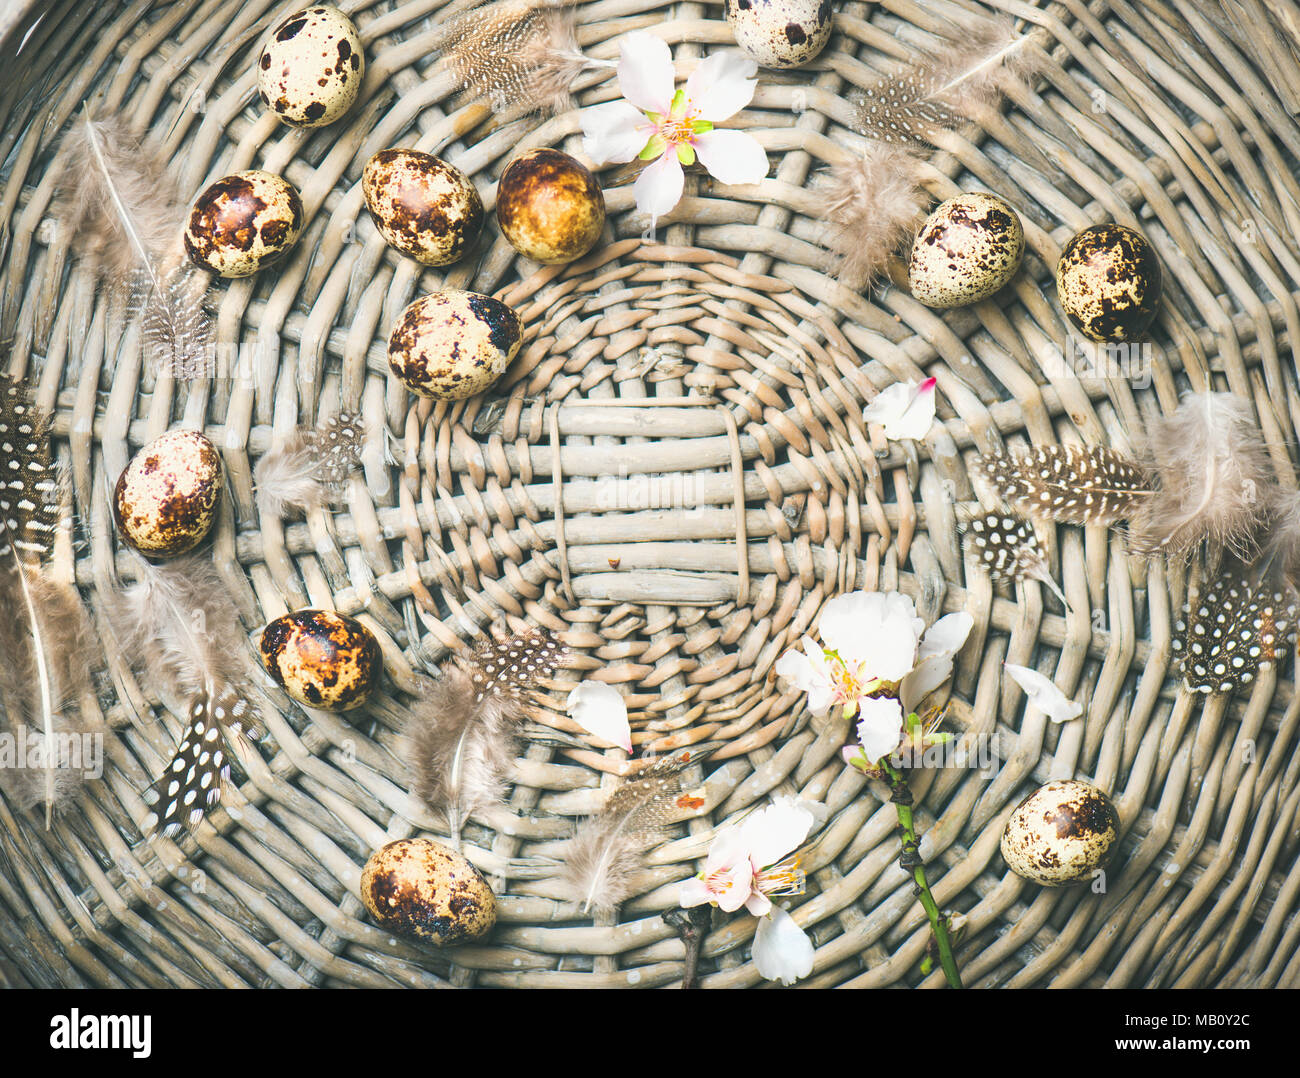 Natural colored quail eggs for Easter with flowers - Stock Image